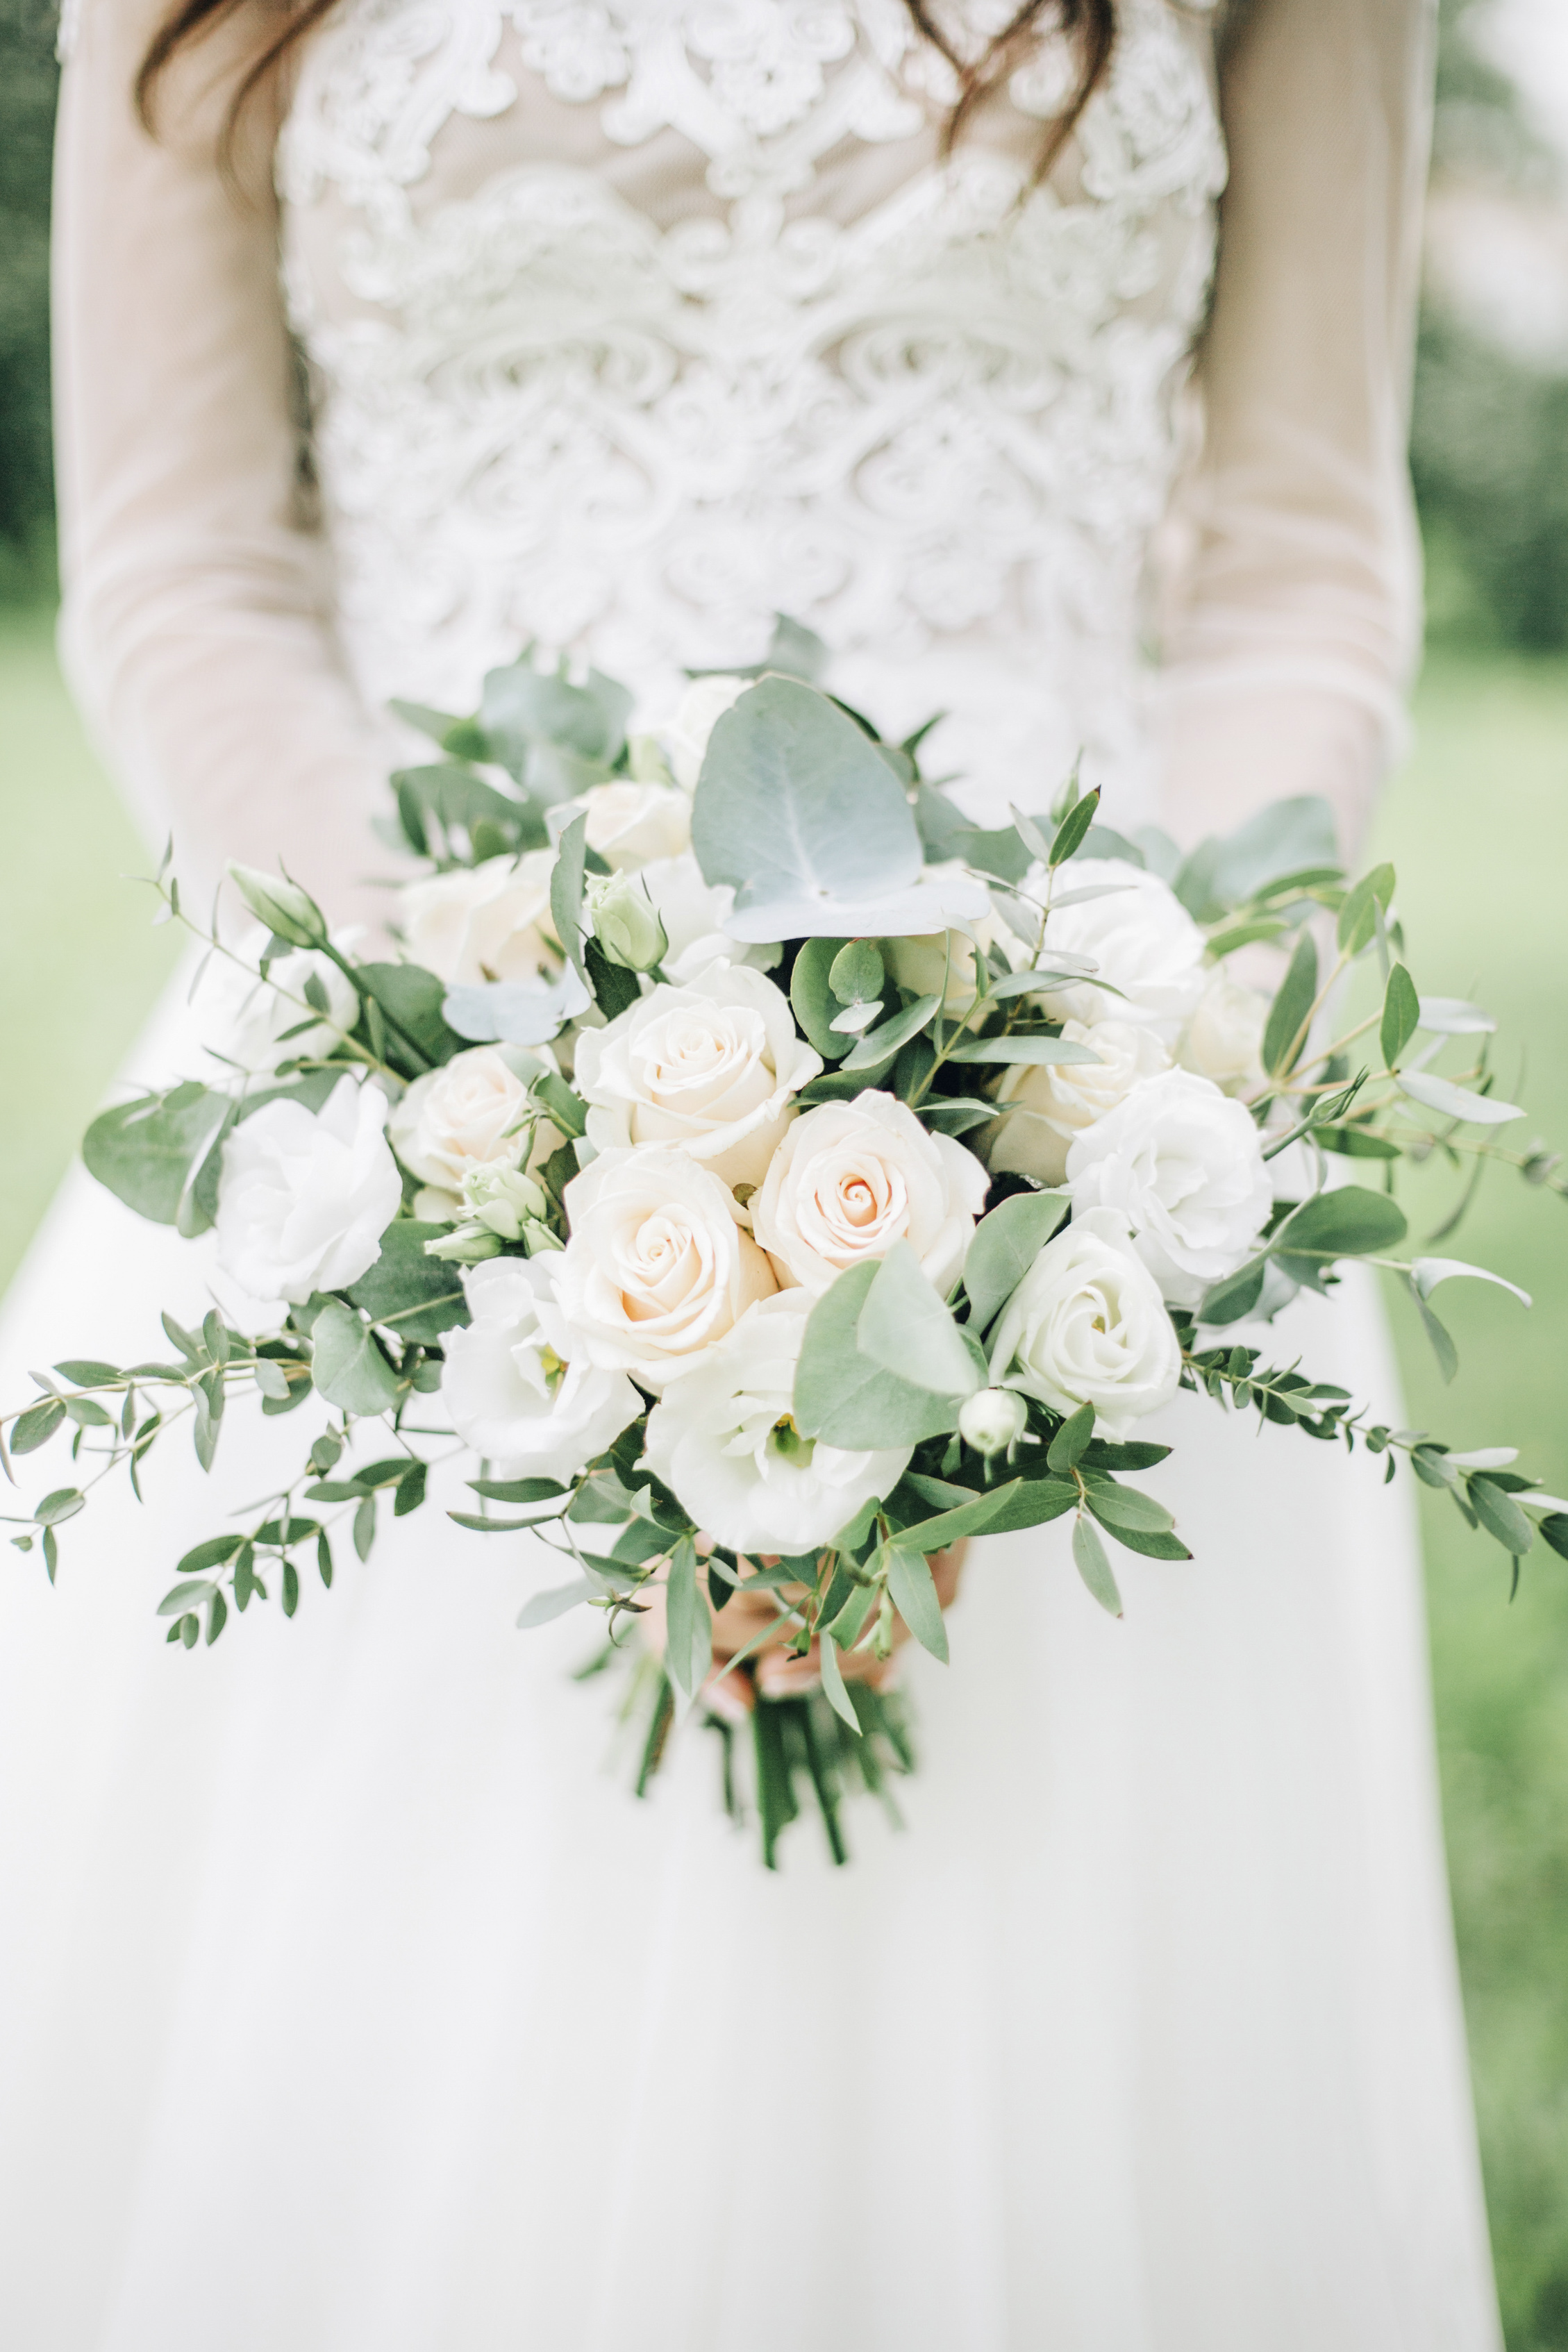 Royal wedding meghan markle Prince Harry 2019 Bouquet